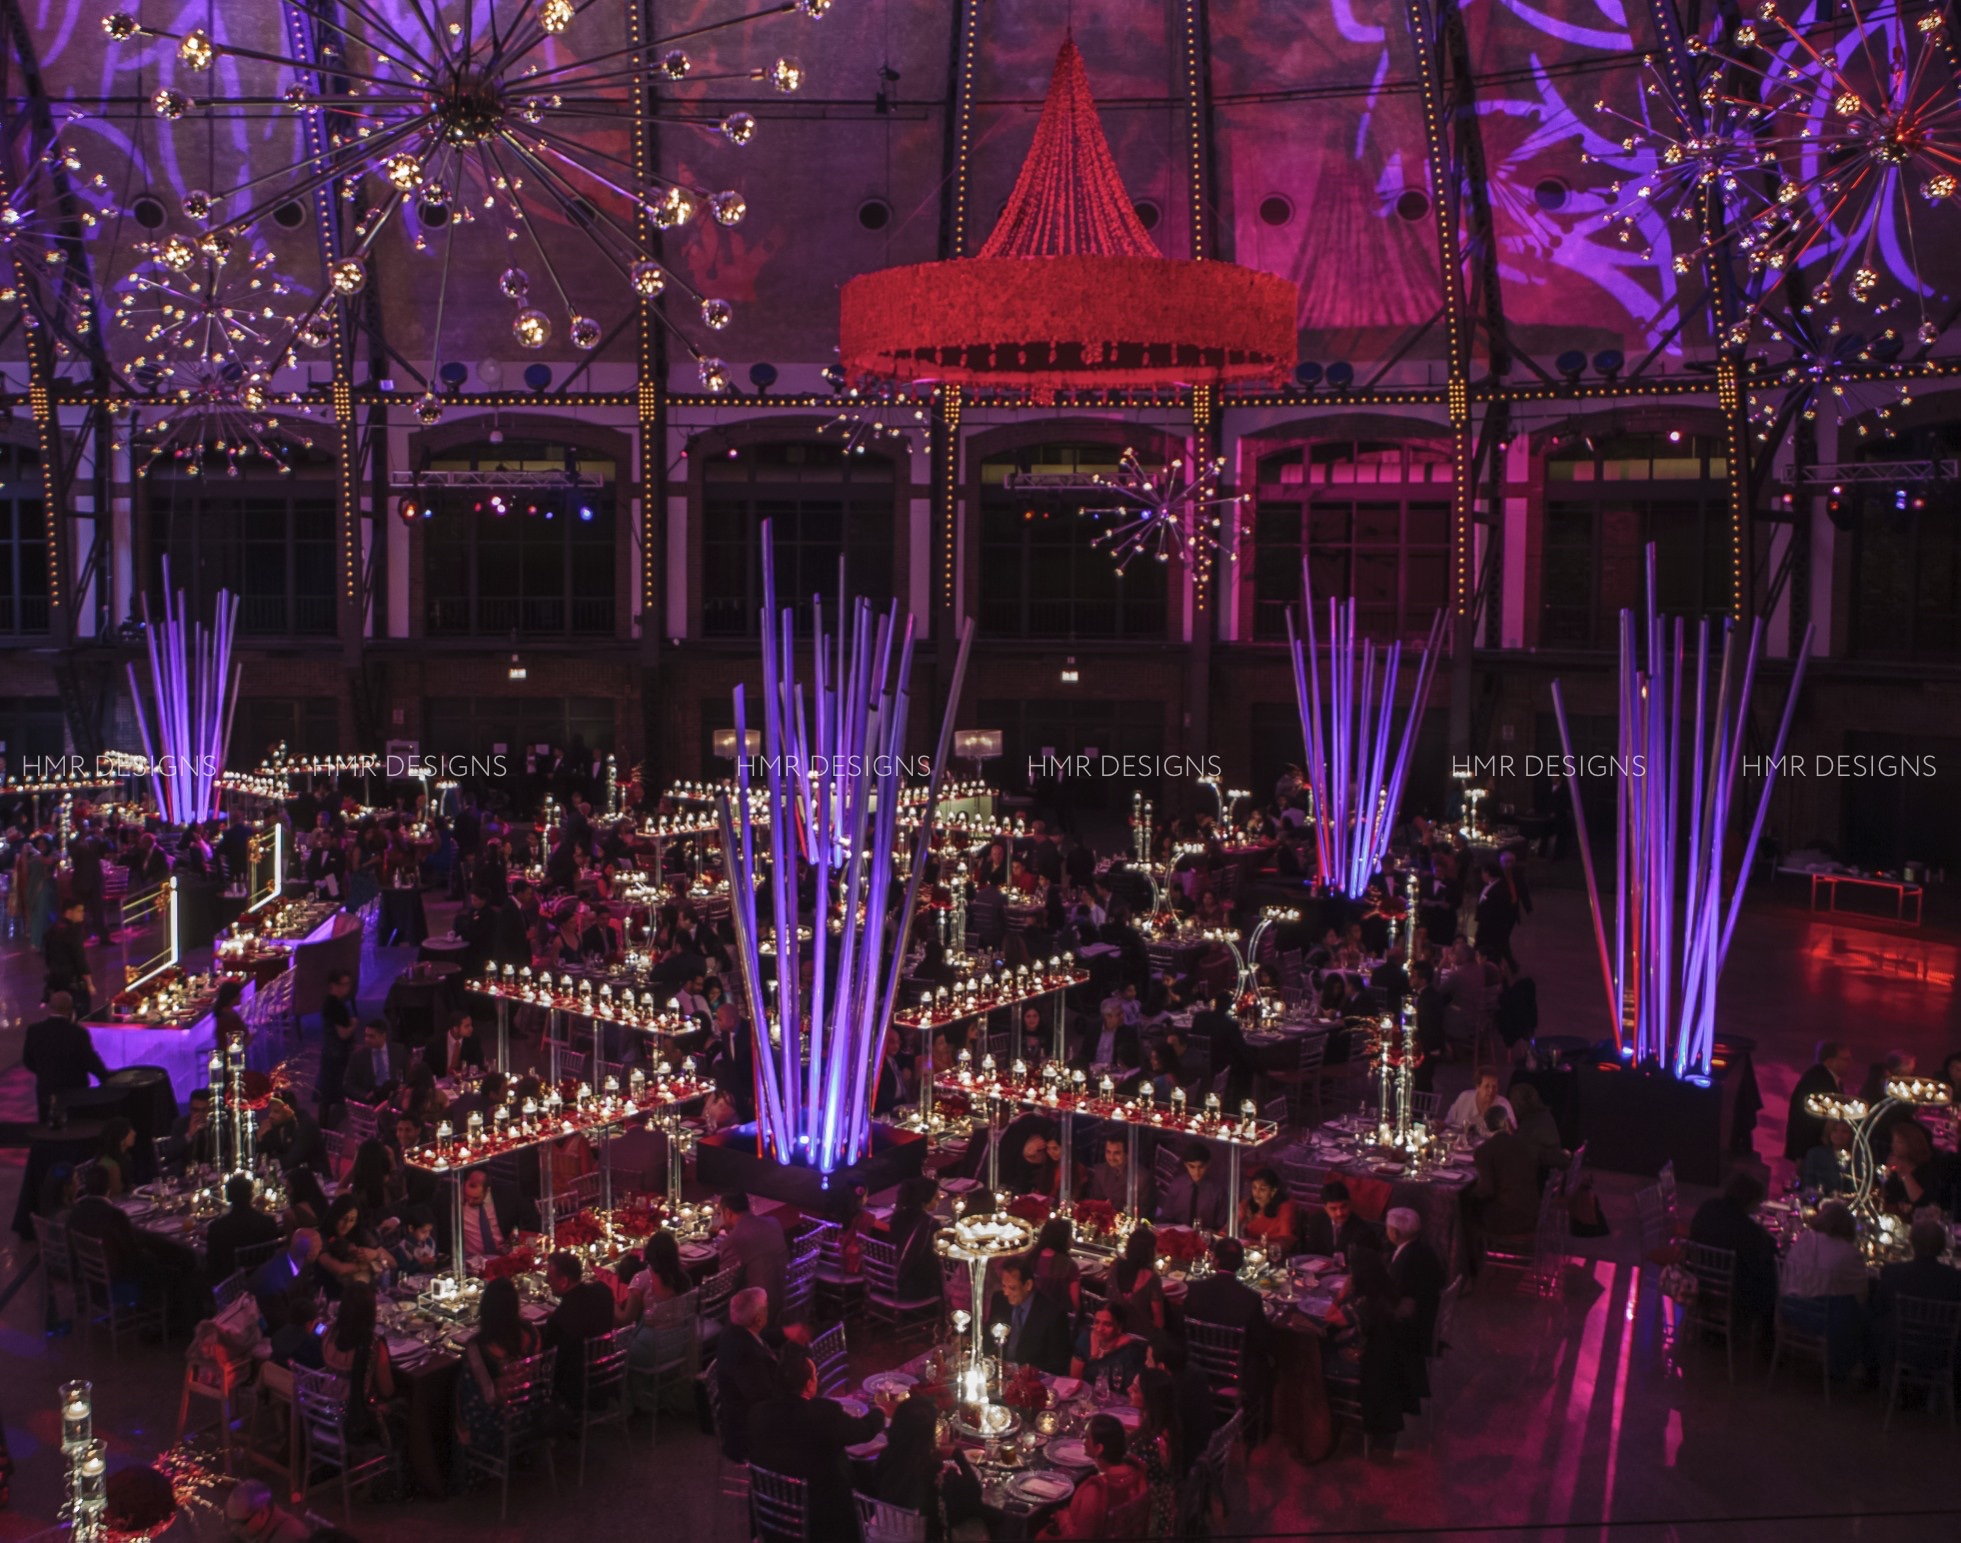 Stunning corporate event decor at Navy Pier Chicago by HMR Designs